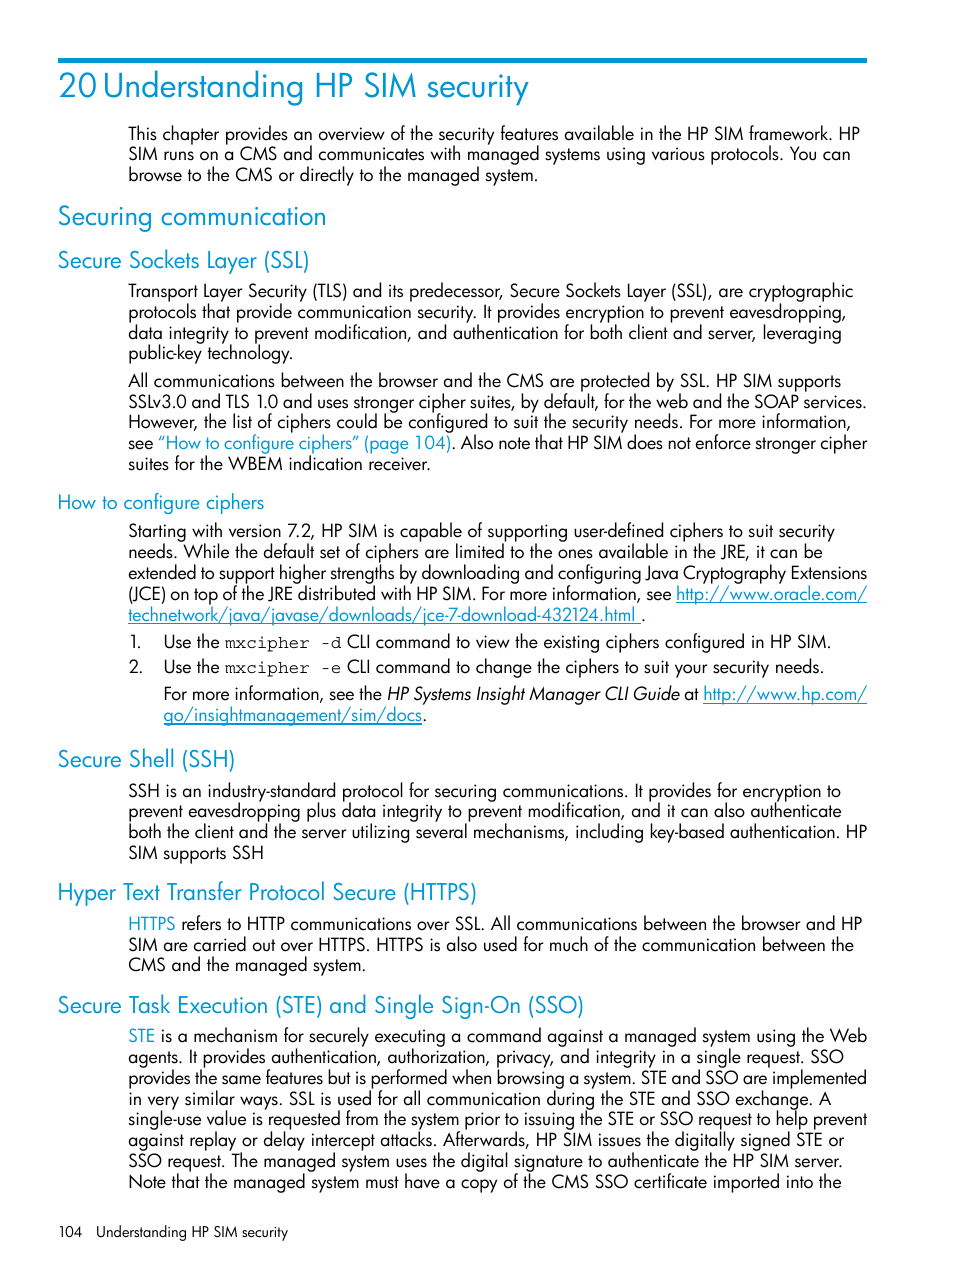 20 understanding hp sim security, Securing communication, Secure